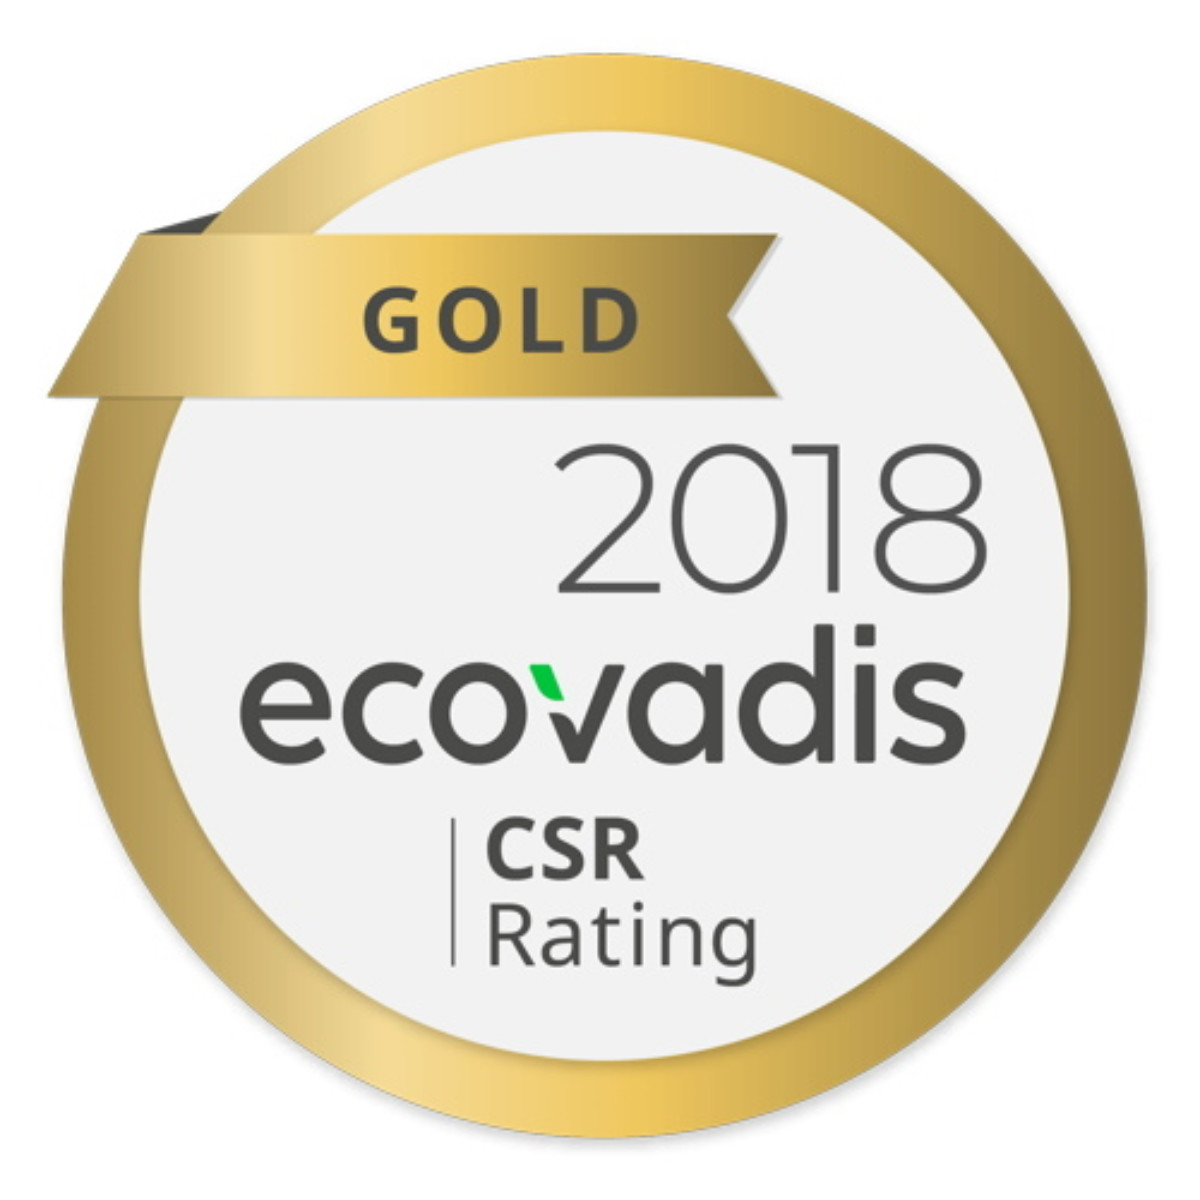 02/2019 – Flexitech Europe received the gold medal of ECOVADIS for its Corporate Social Responsability